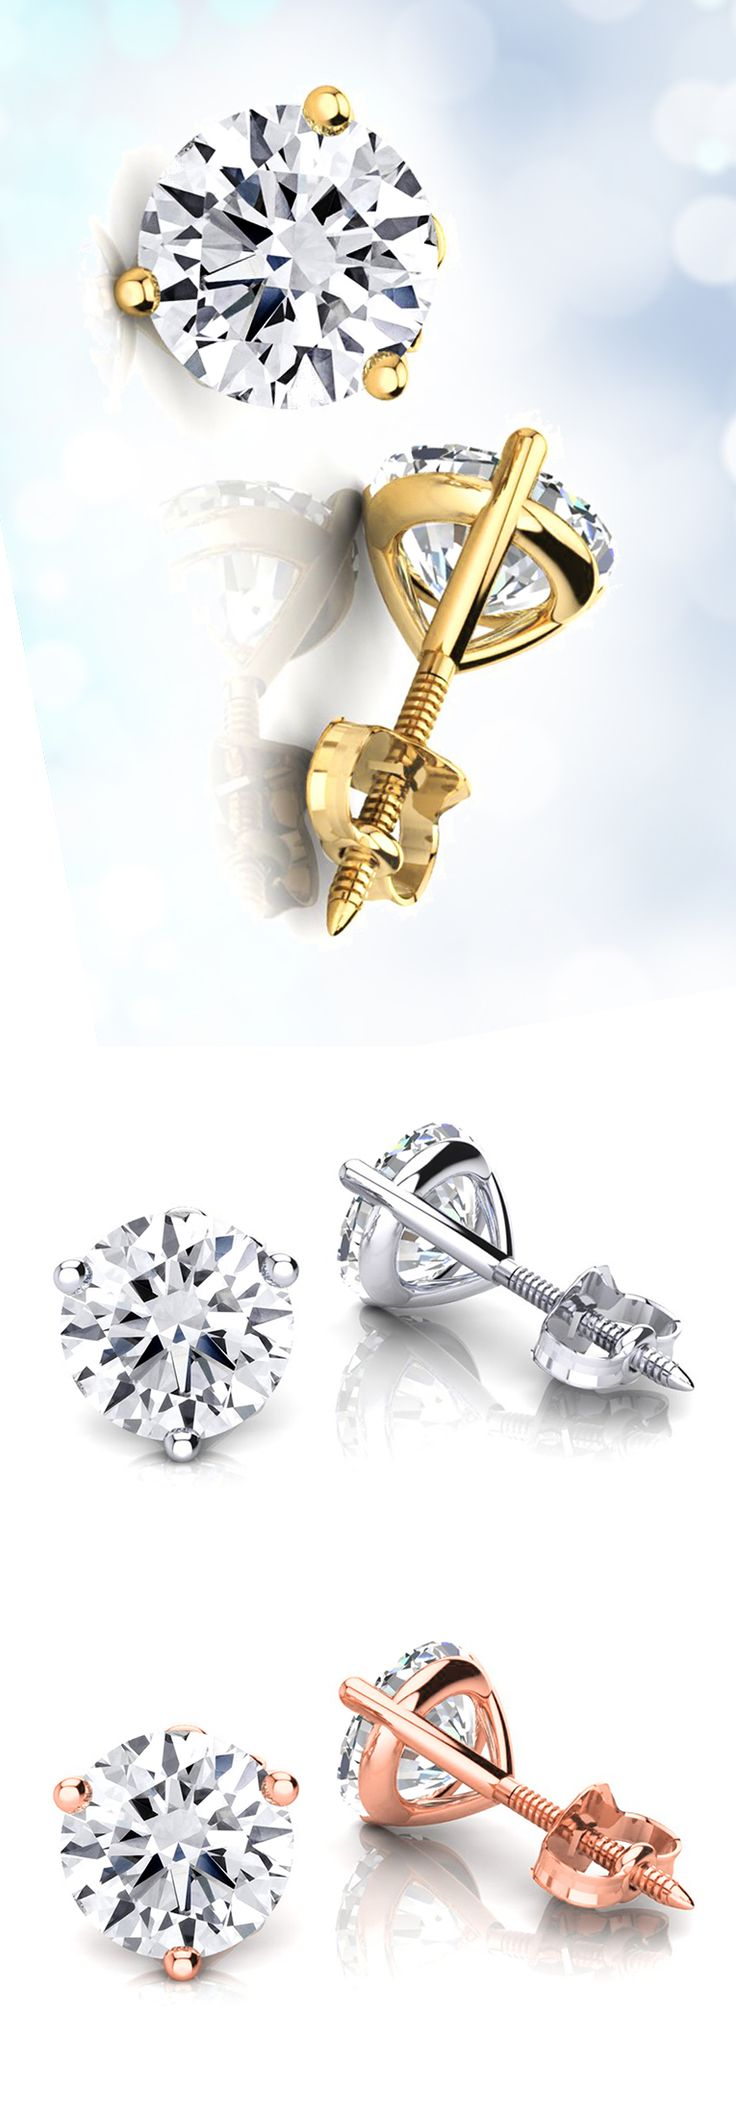 For Timeless Elegance, Diamond Solitaire Earrings Are The Way To Go They  Are Not